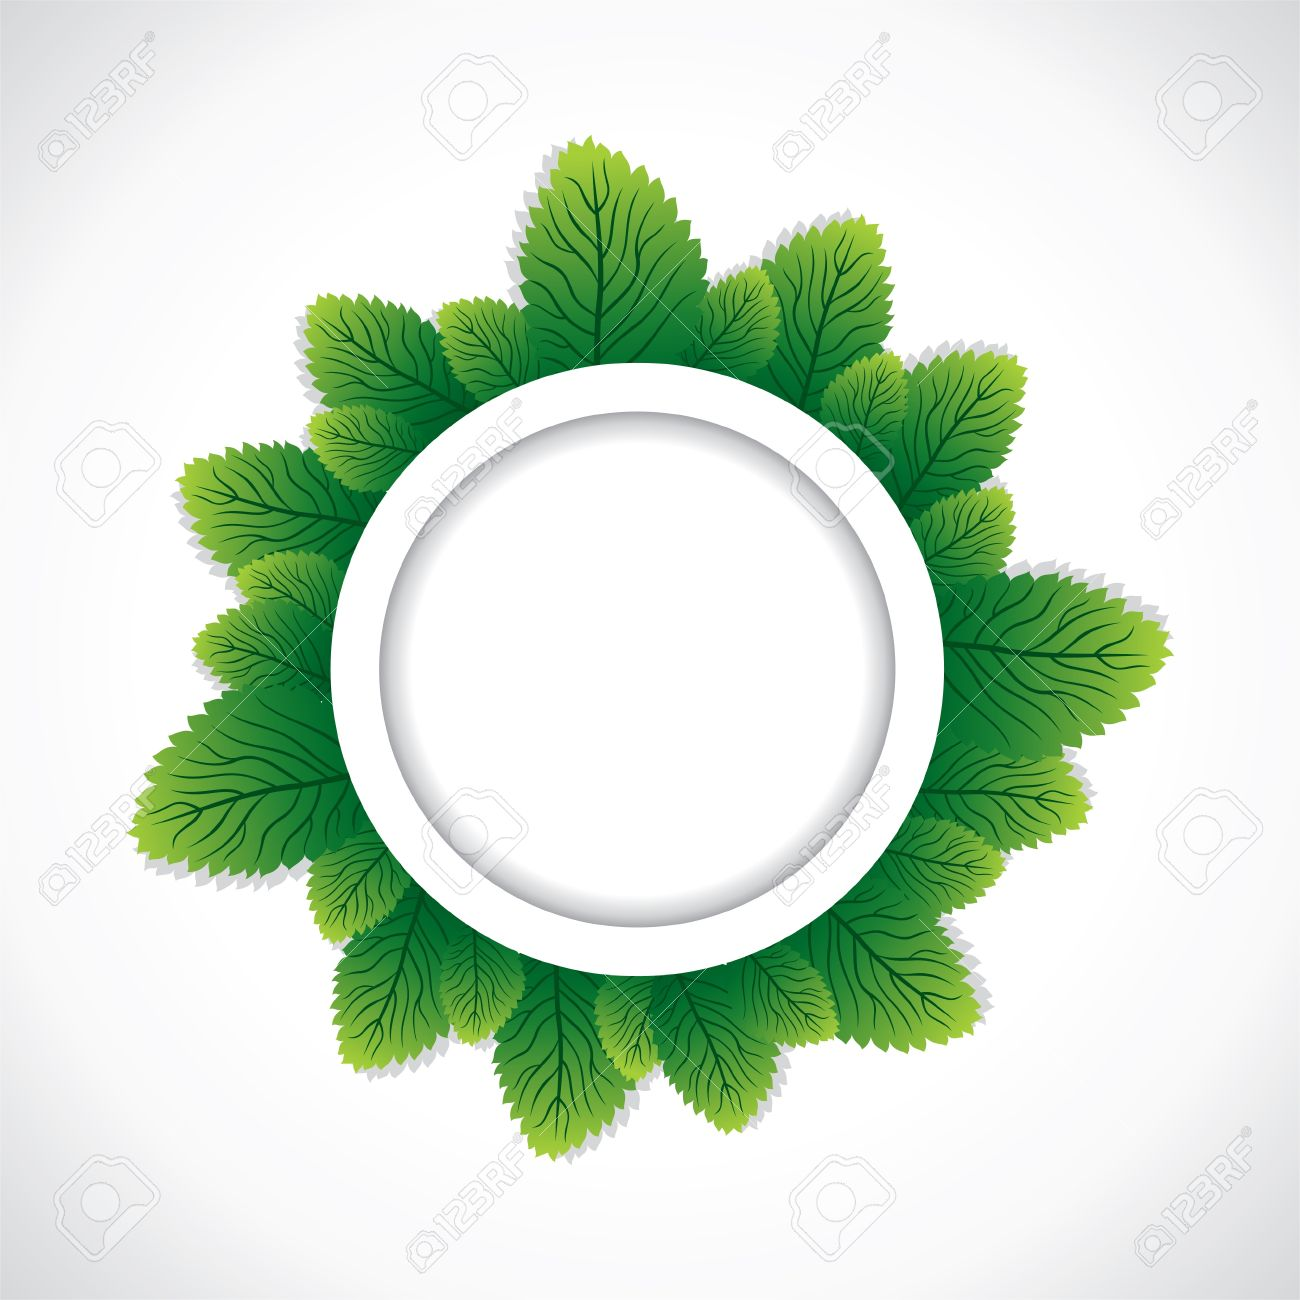 green round leaf border stock Stock Vector - 16904535